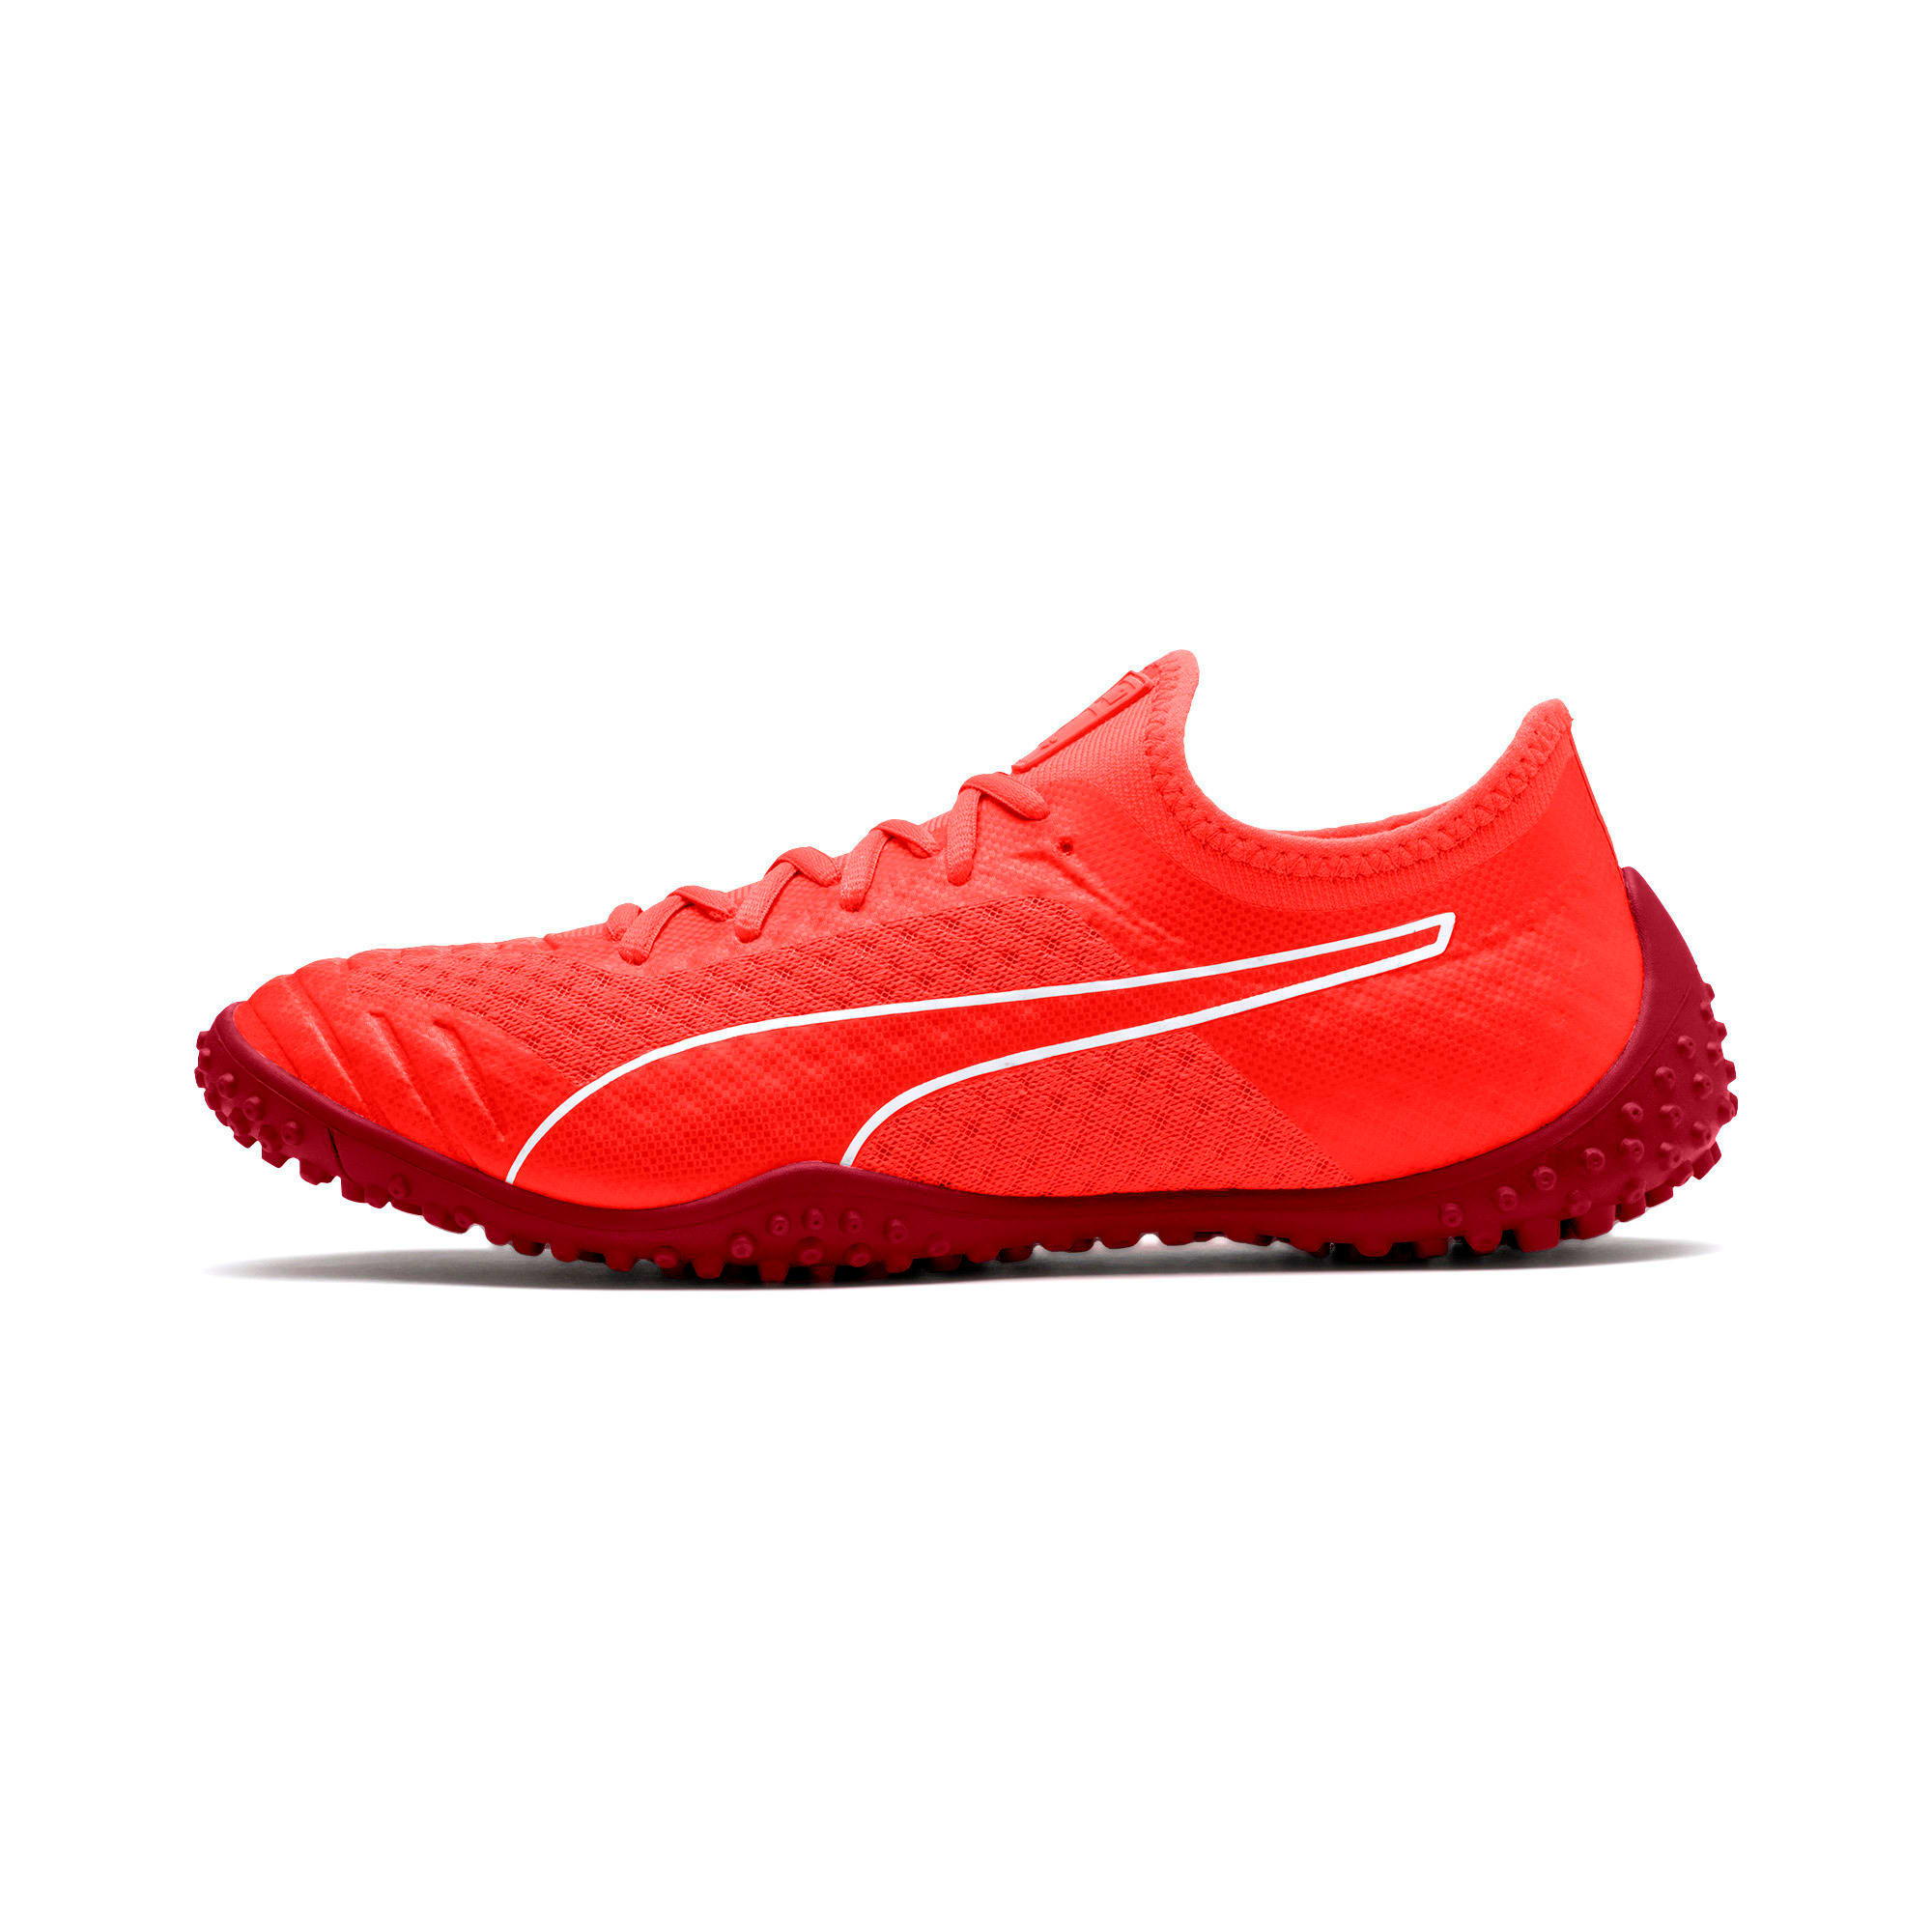 Thumbnail 1 of 365 Concrete 2 ST Men's Soccer Shoes, Nrgy Red-Rhubarb, medium